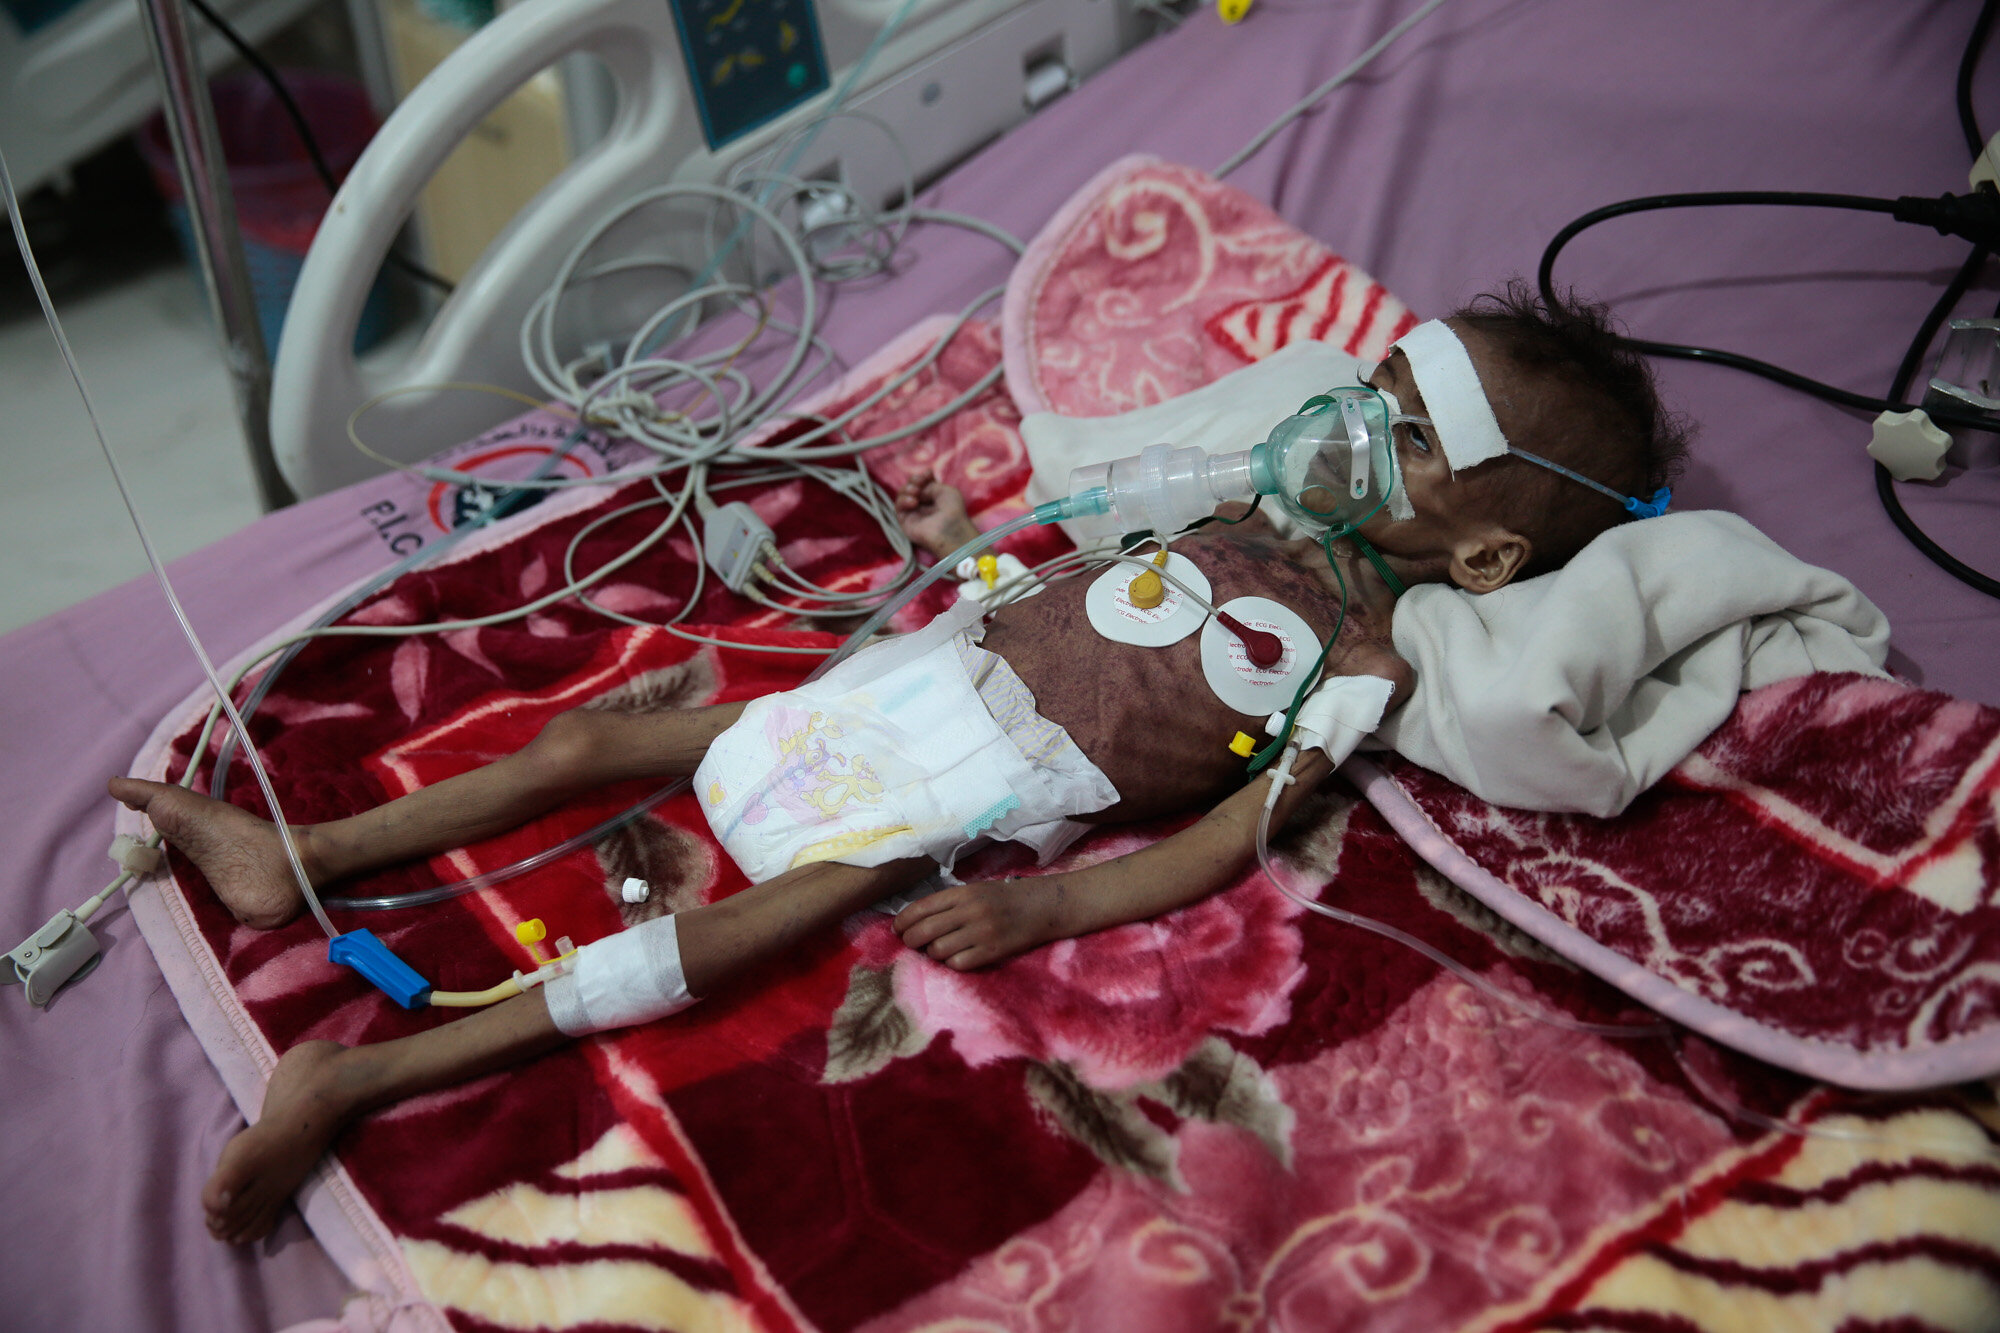 A malnourished girl, Rahmah Watheeq, receives treatment at a feeding center at Al-Sabeen hospital in Sanaa, Yemen, on Nov. 3, 2020. Two-thirds of Yemen's population of about 28 million people are hungry, and nearly 1.5 million families currently rely entirely on food aid to survive, with another million people expected to fall into crisis levels of hunger before the year's end, according to aid agencies working in Yemen. (AP Photo/Hani Mohammed)